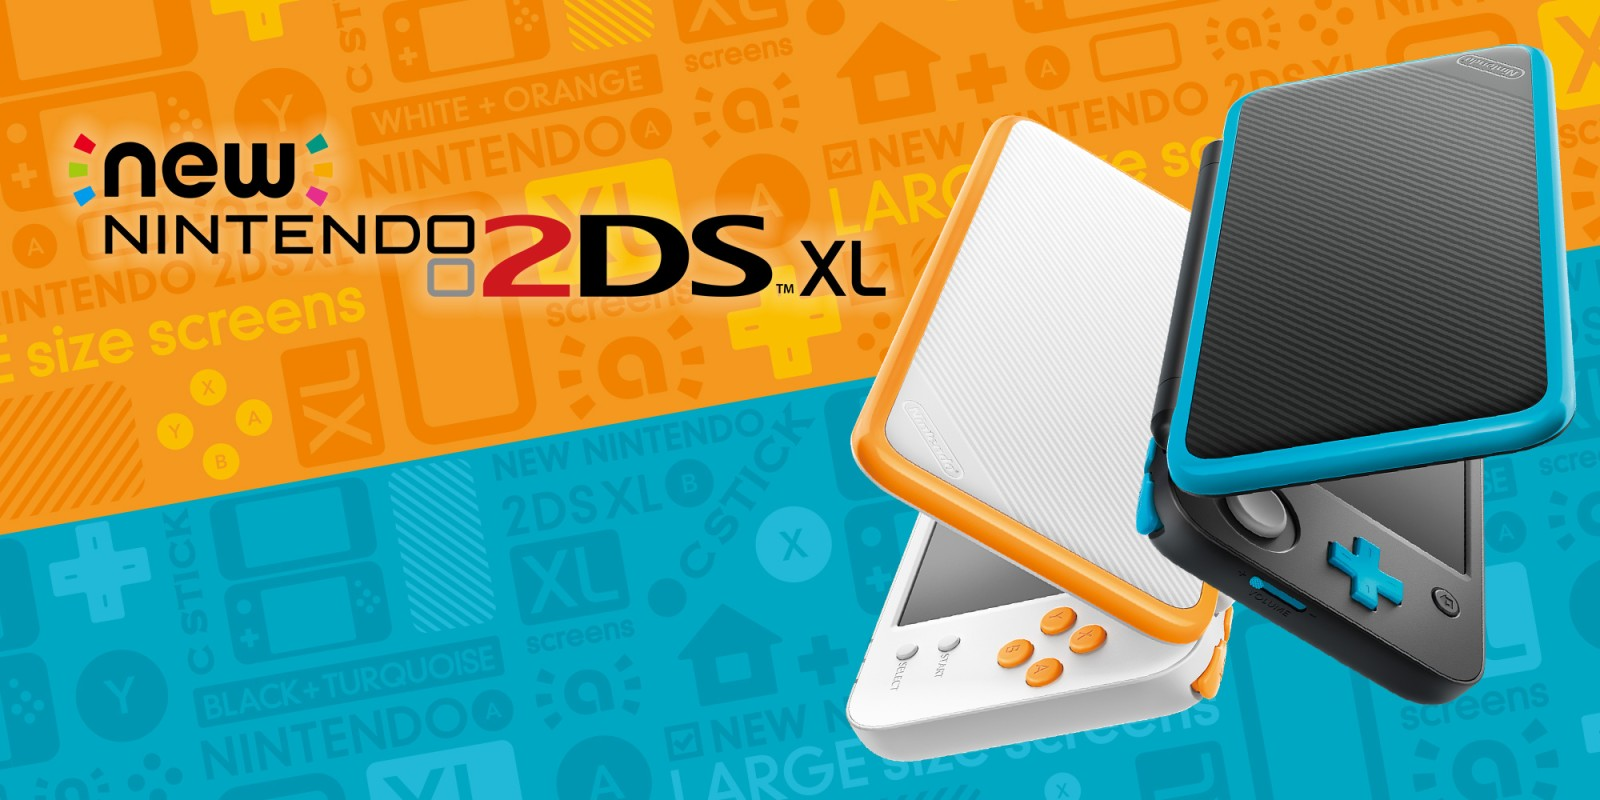 Grab a New Nintendo 2DS XL Mario Kart 7 bundle while it's down at $130 shipped